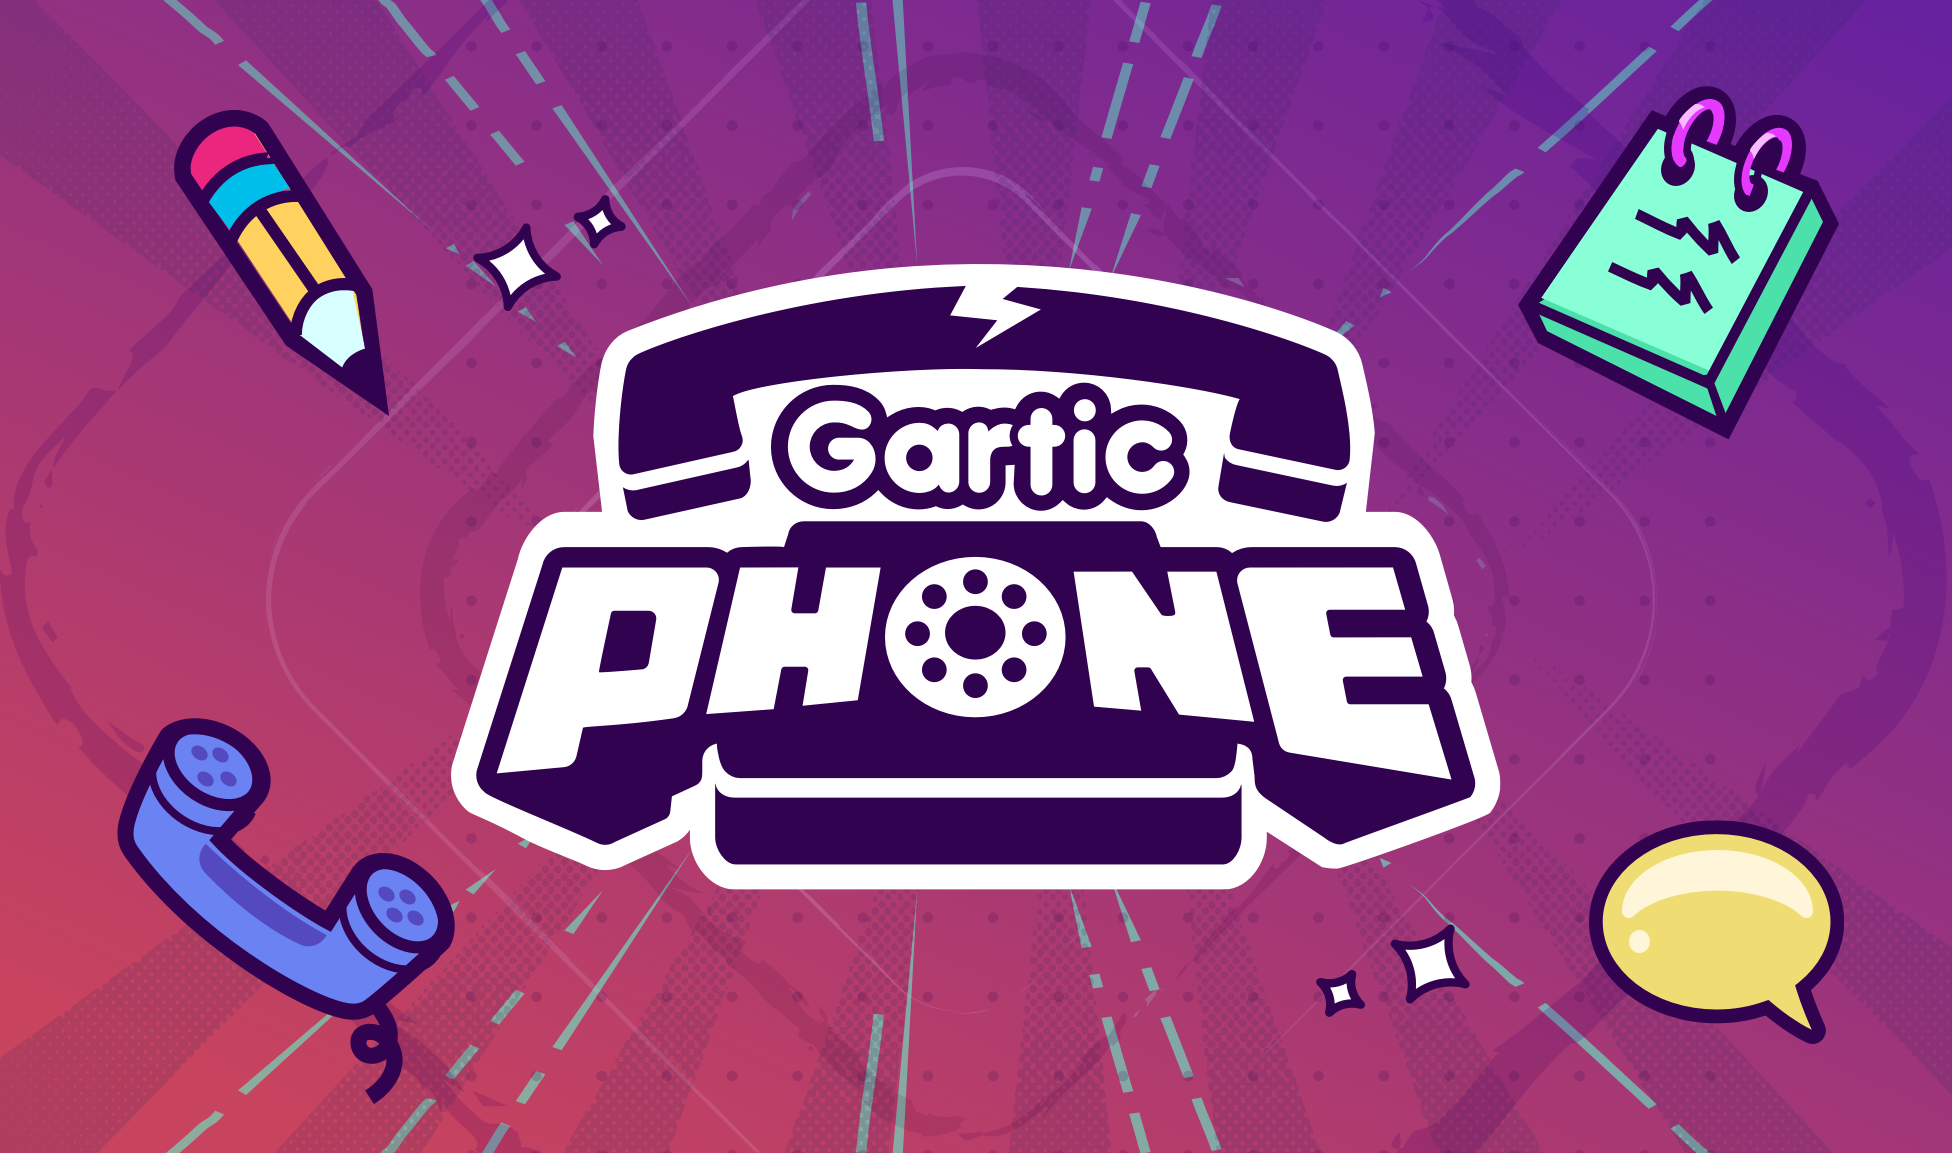 Gartic Phone: how to play the game?